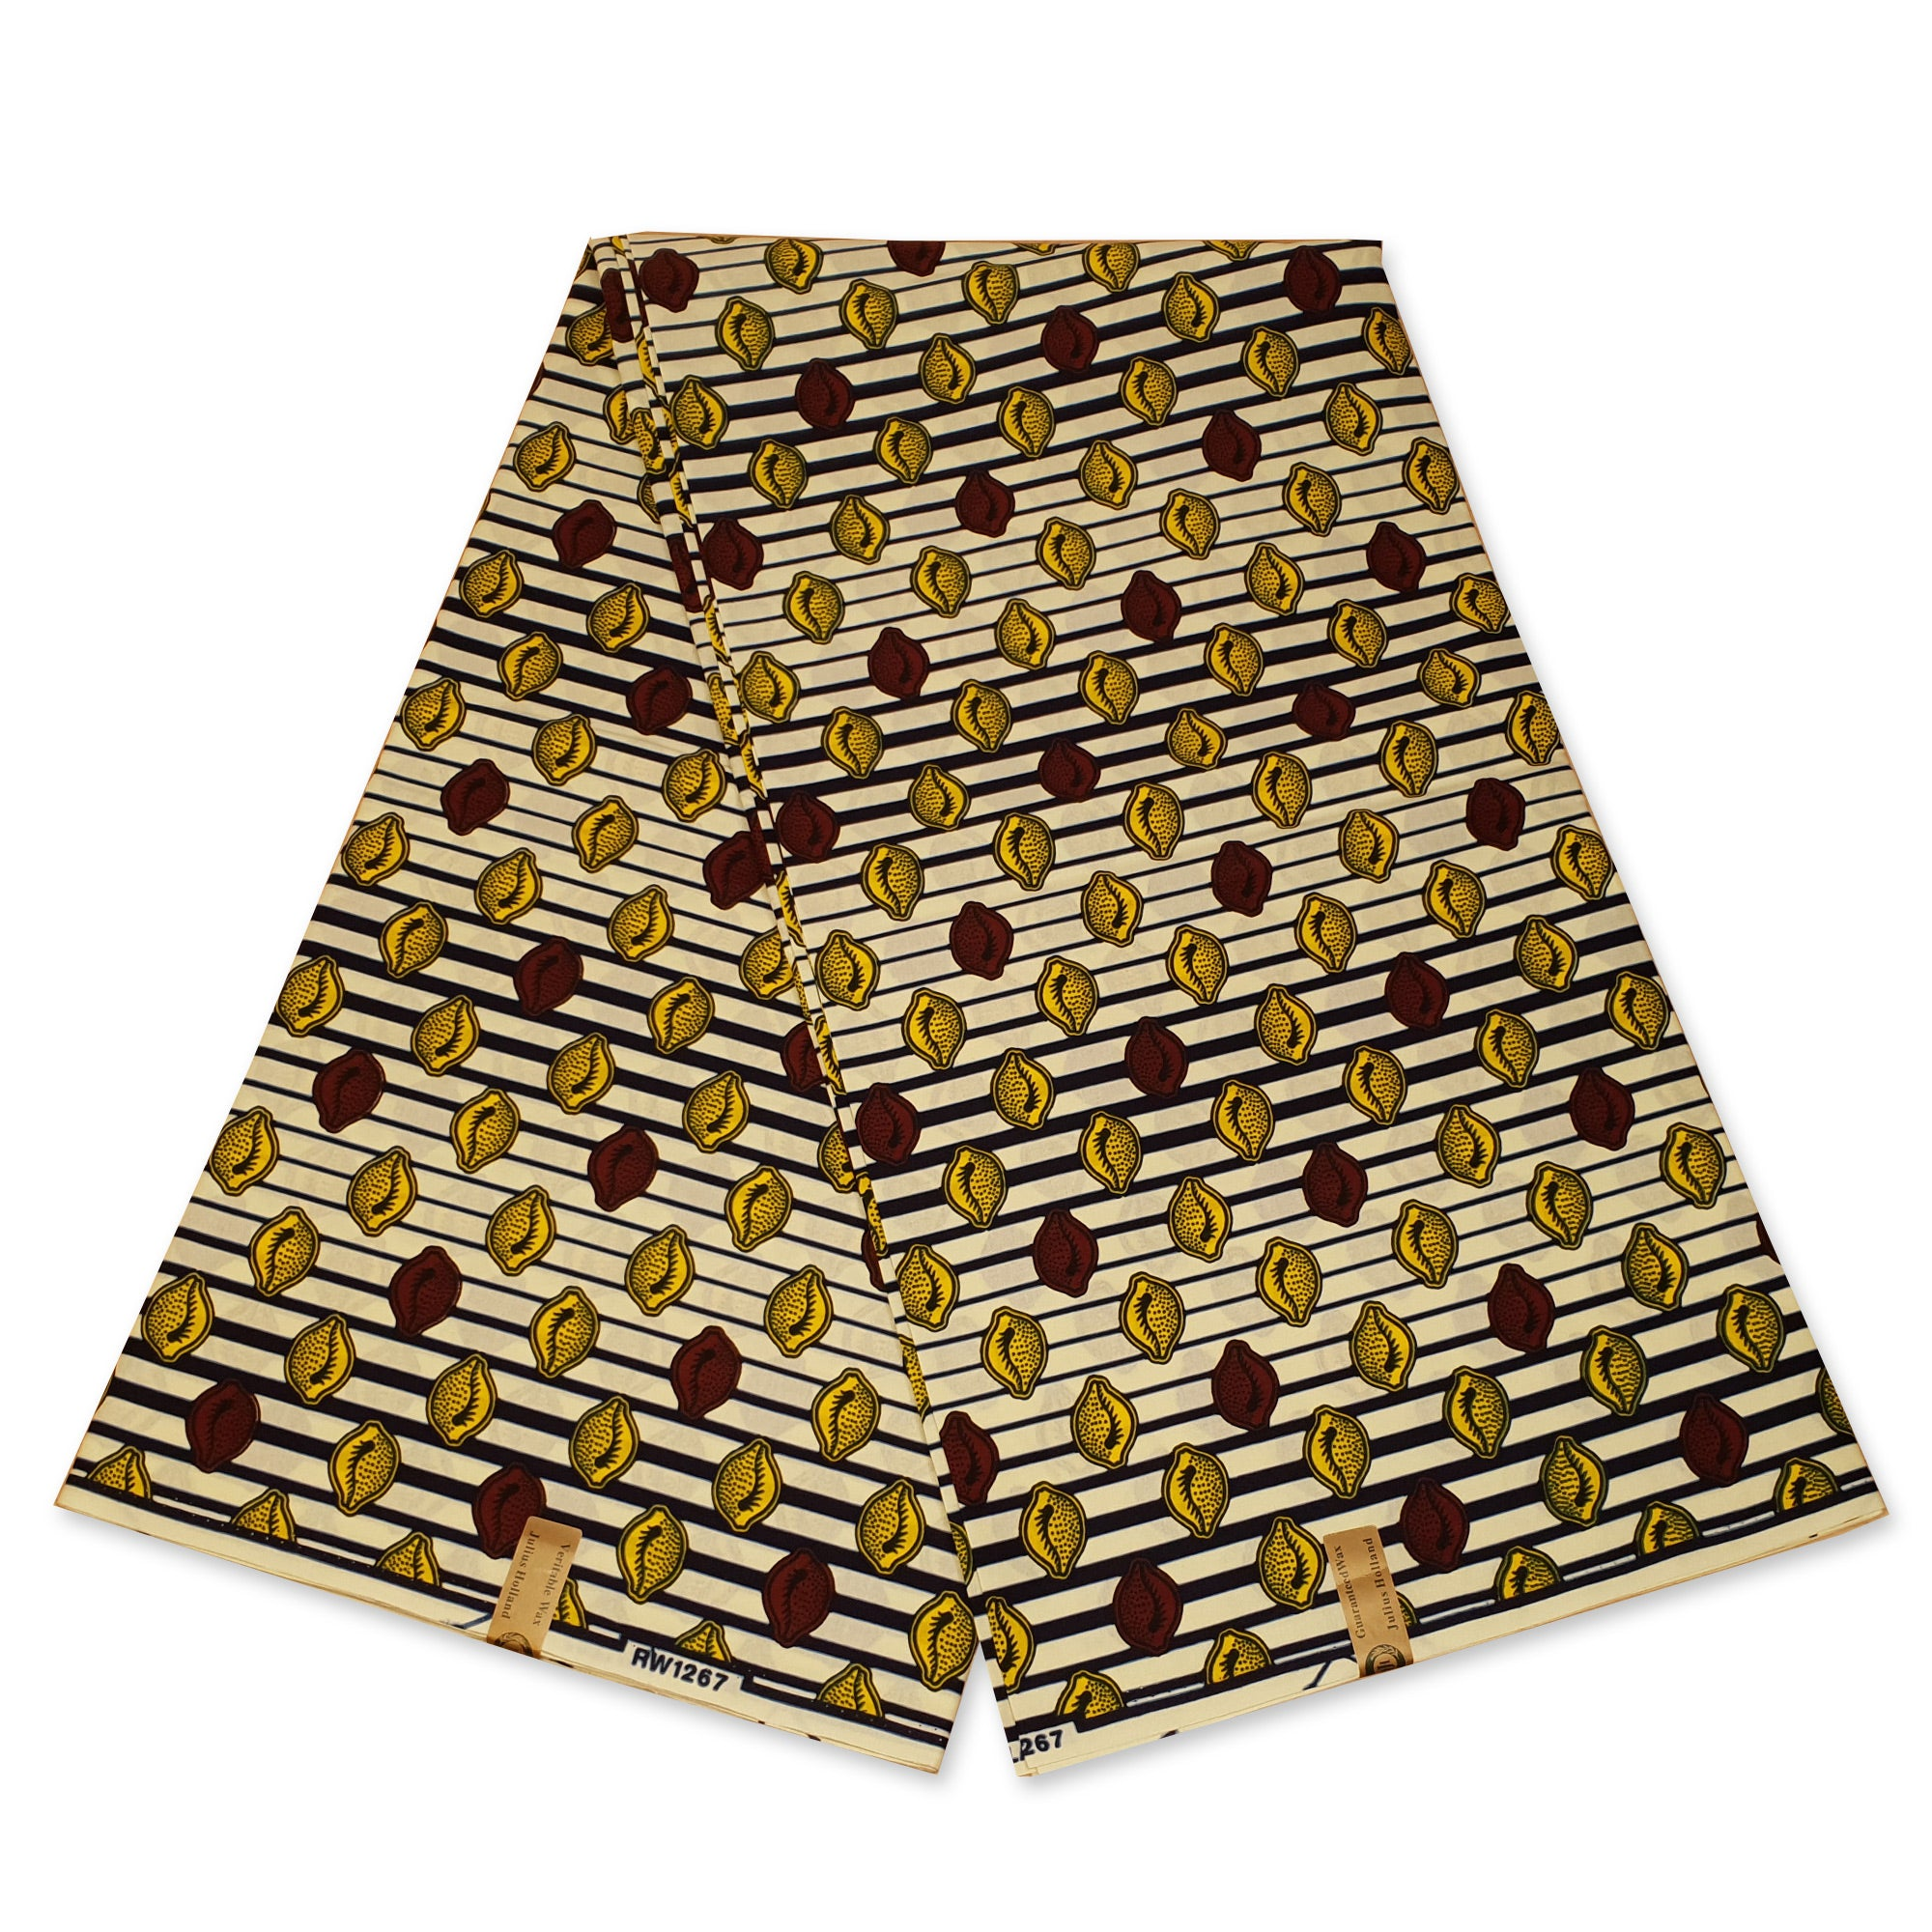 African Wax print fabric - Yellow brown Shells